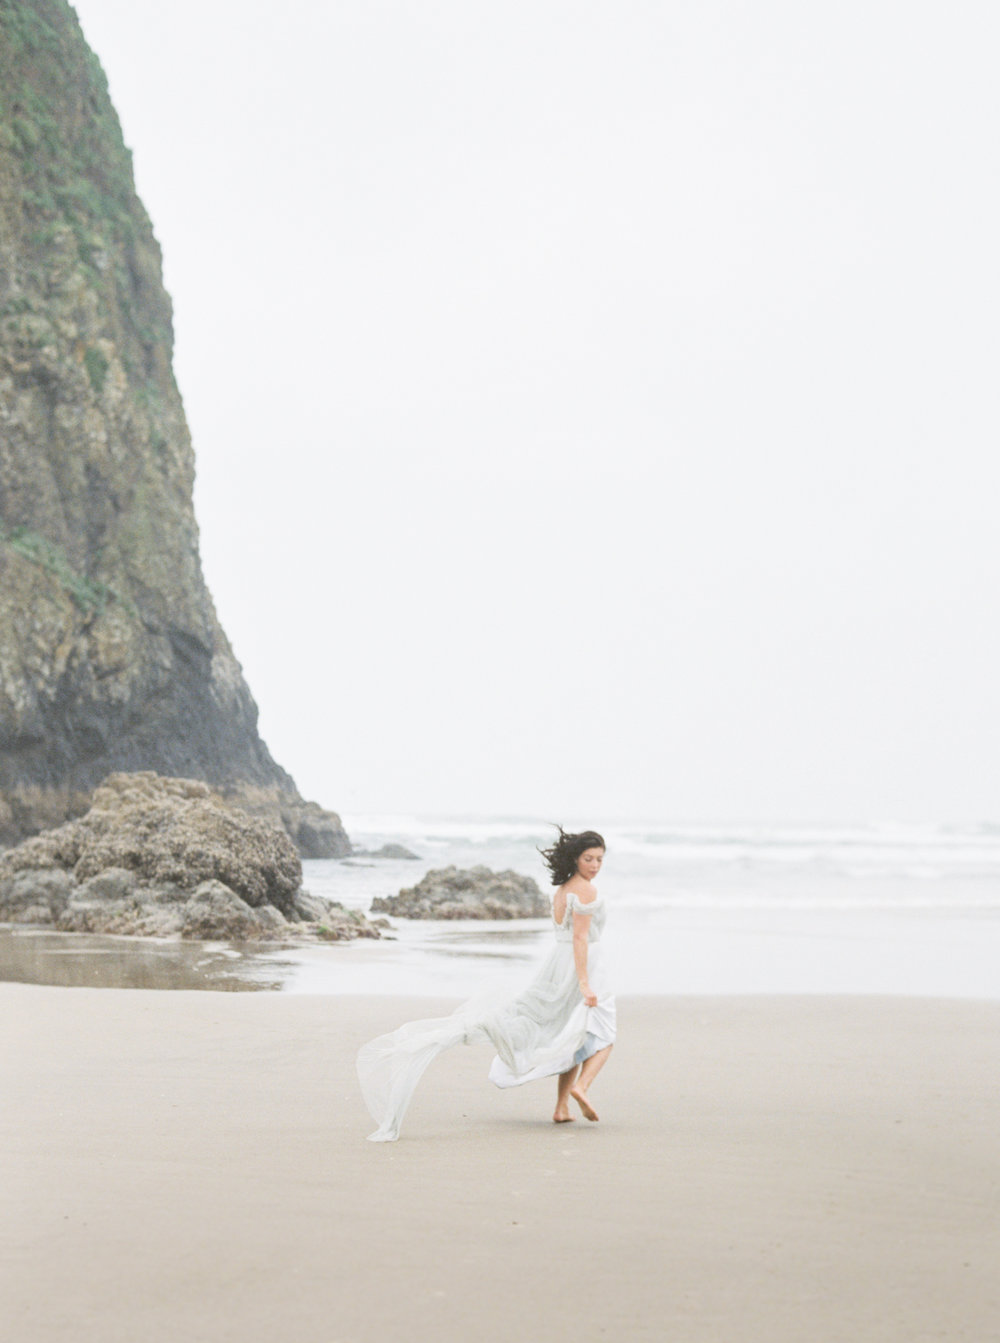 Jacqueline Anne Photography, Beach Wedding Session captured in Portland, Halifax Nova Scotia Wedding Photographer  Coloured Wedding Dresses, Kathryn Bass Bridal